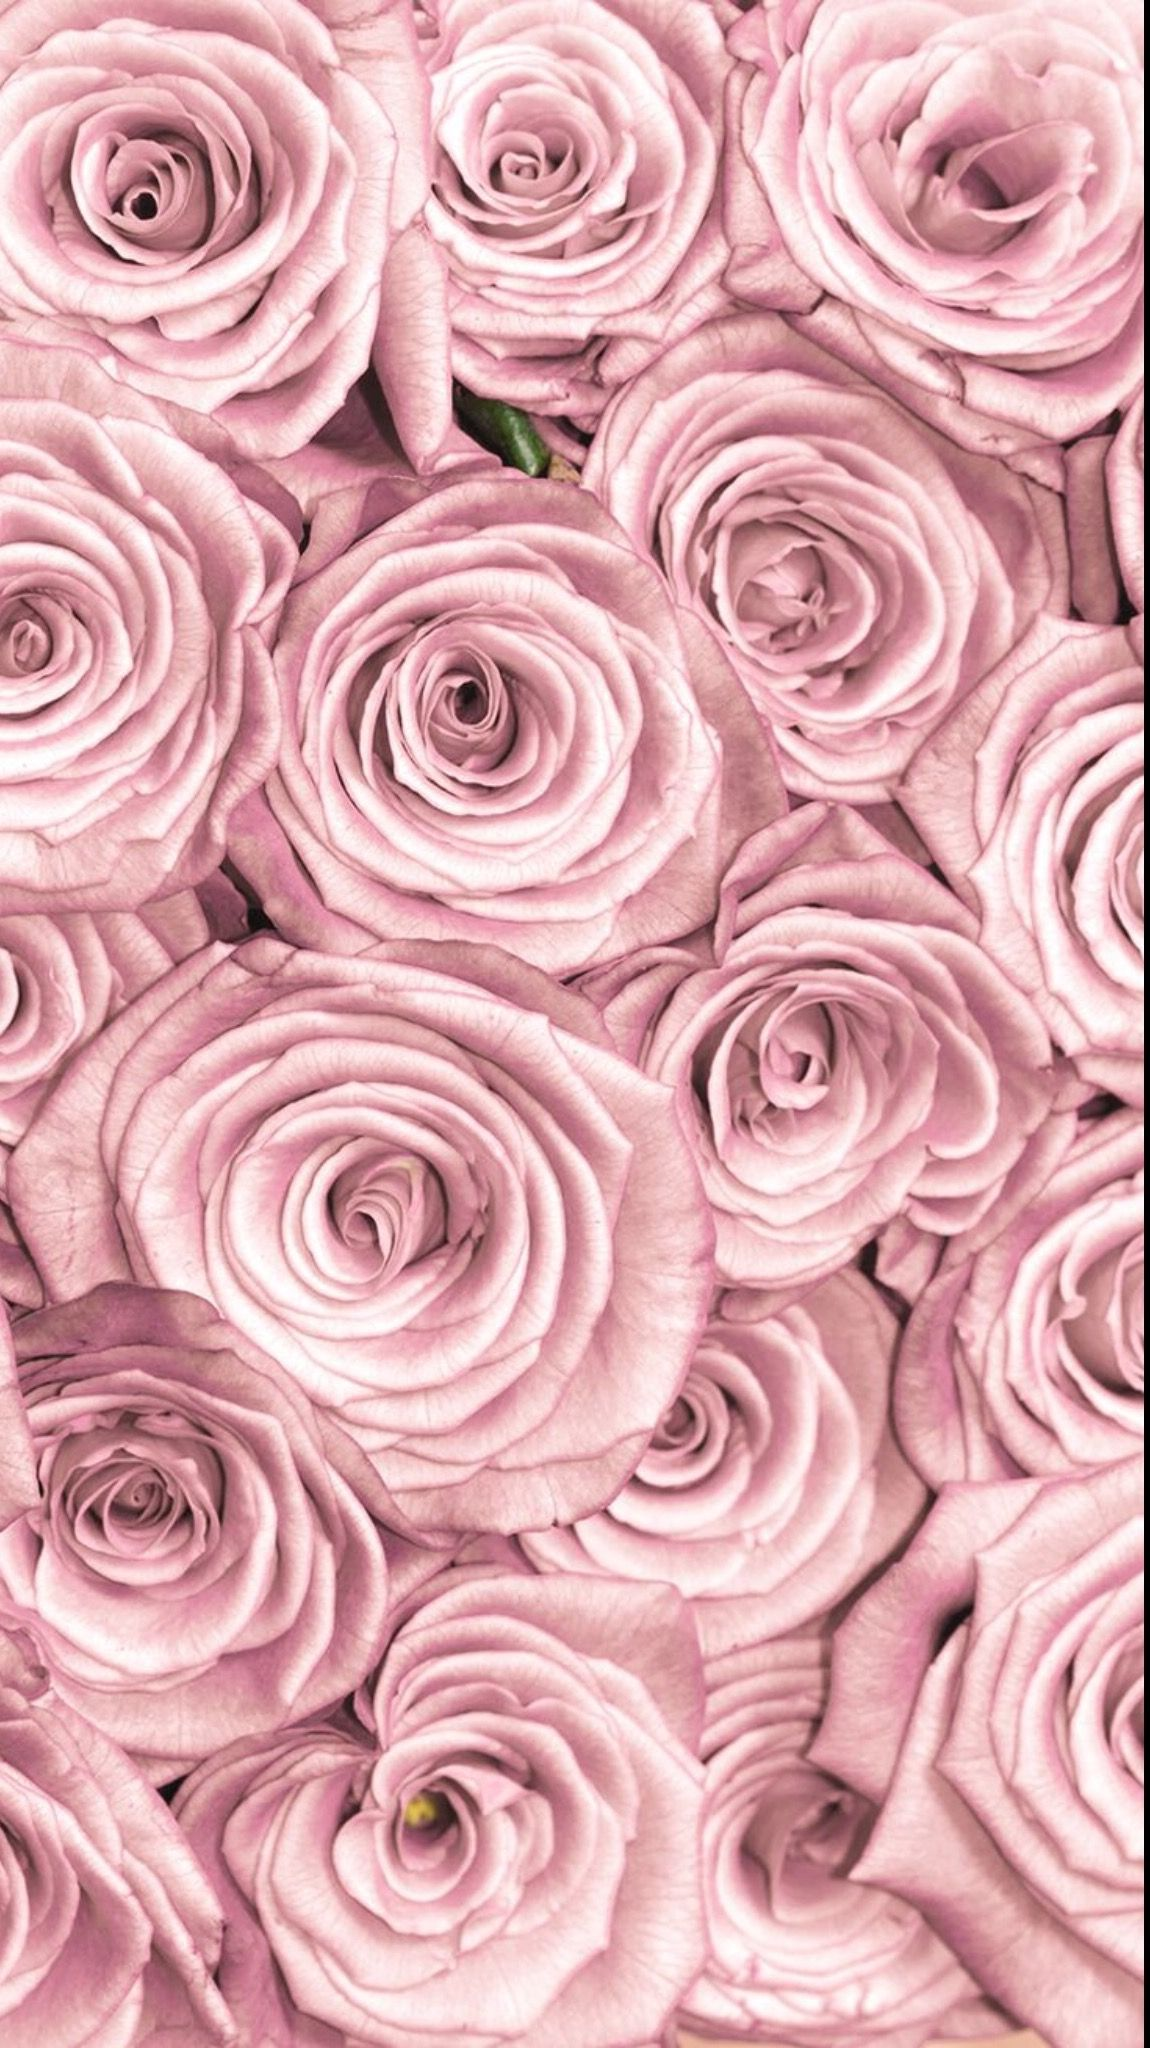 Flowers lockscreen rose gold rose gold wallpapers - Iphone wallpaper rose gold ...